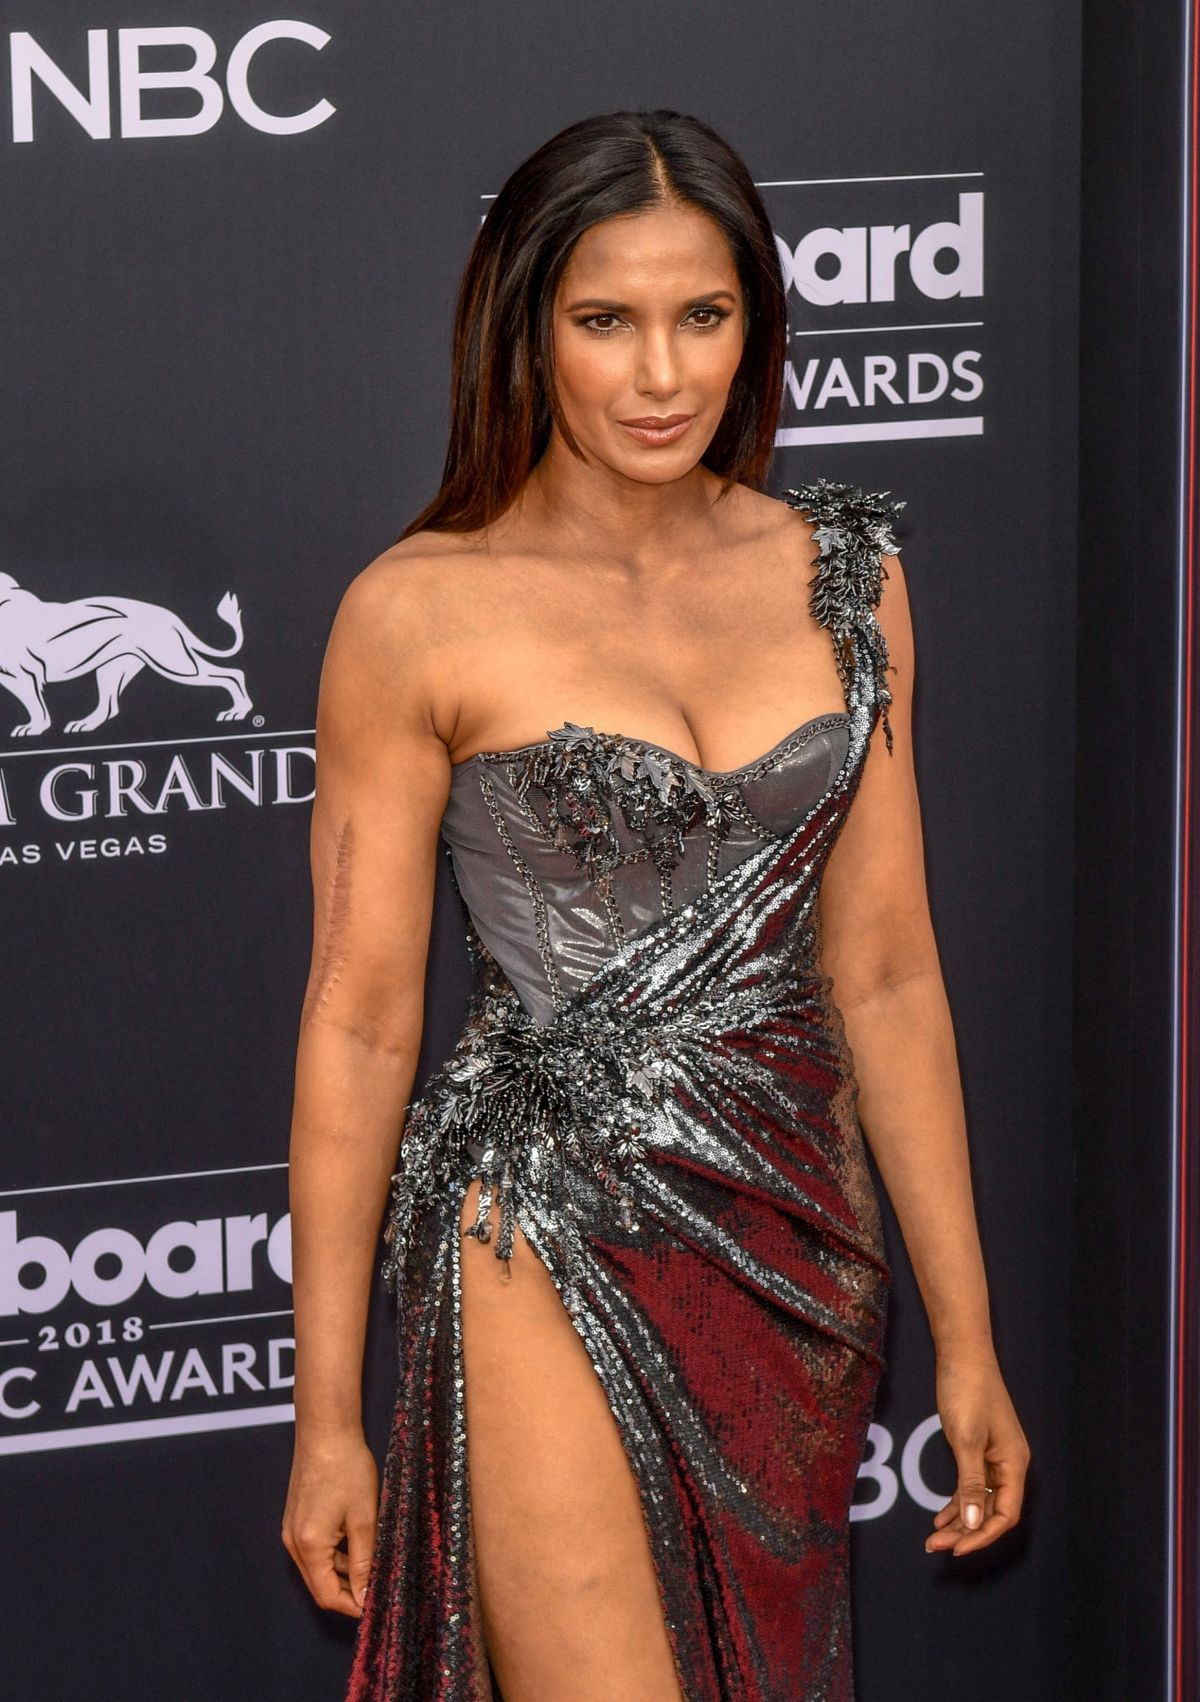 Padma Lakshmi At 2018 Billboard Music Awards At Mgm Grand Garden Arena In Las Vegas in addition Contact as well 5414439775 also Golf Umbrella 8 likewise Grounds V3927015. on studio with garden